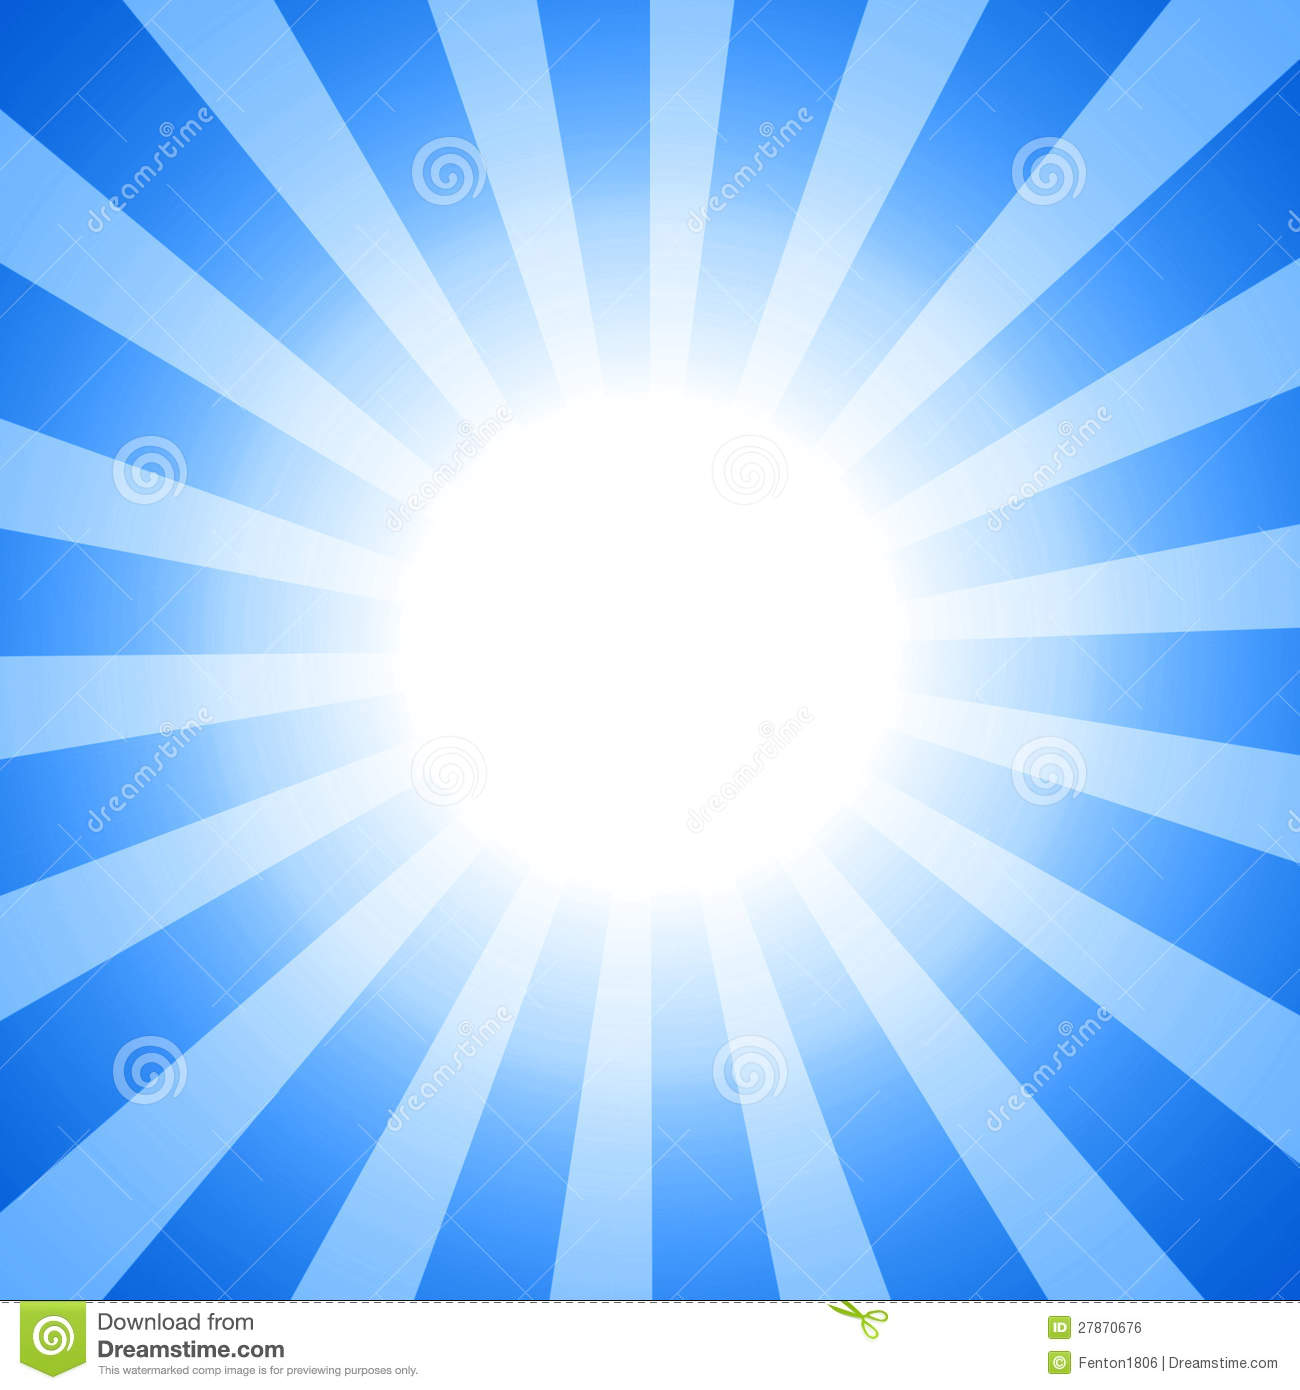 Clipart Sun Royalty Free Stock Image.